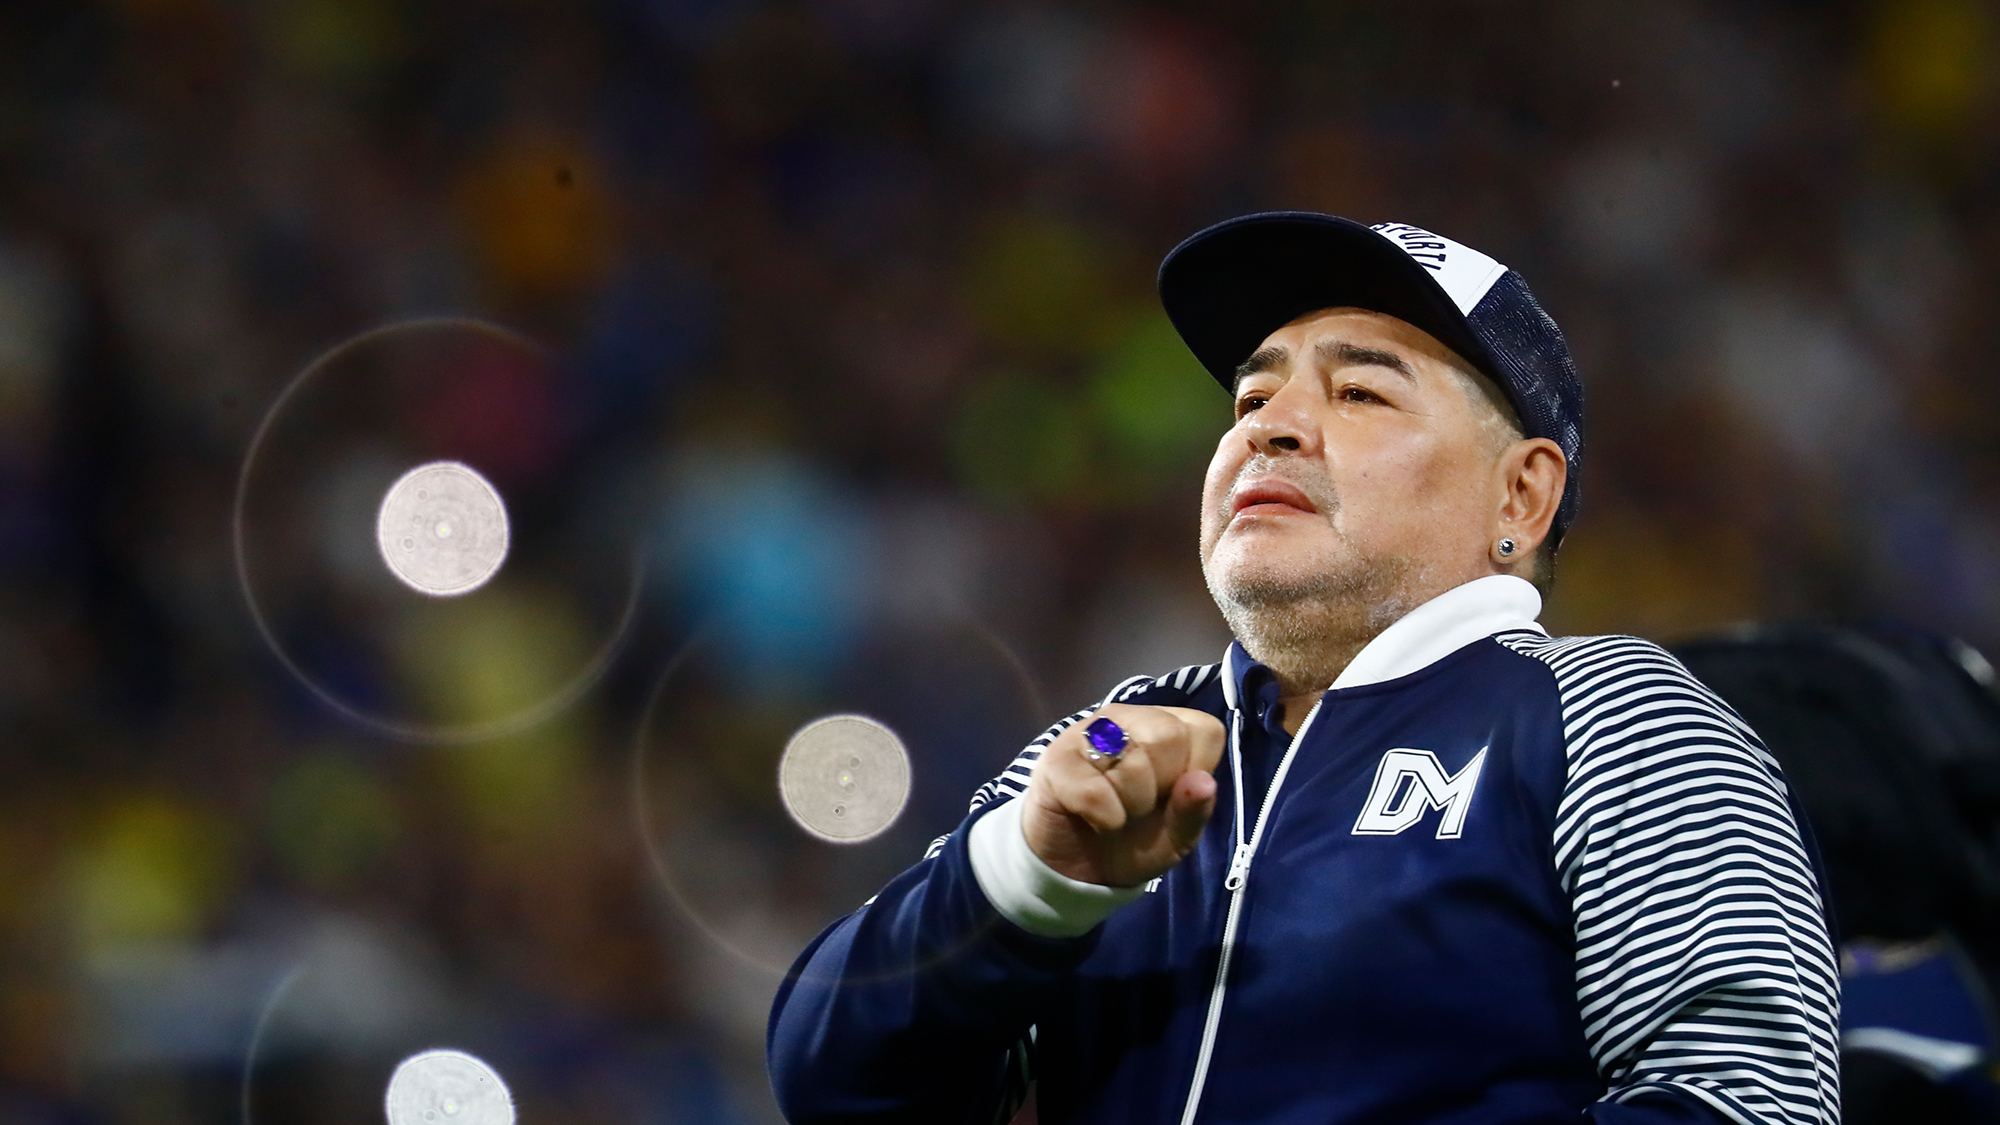 Diego Maradona was in agony for the 12 hours leading up to his death, says Argentine medical board